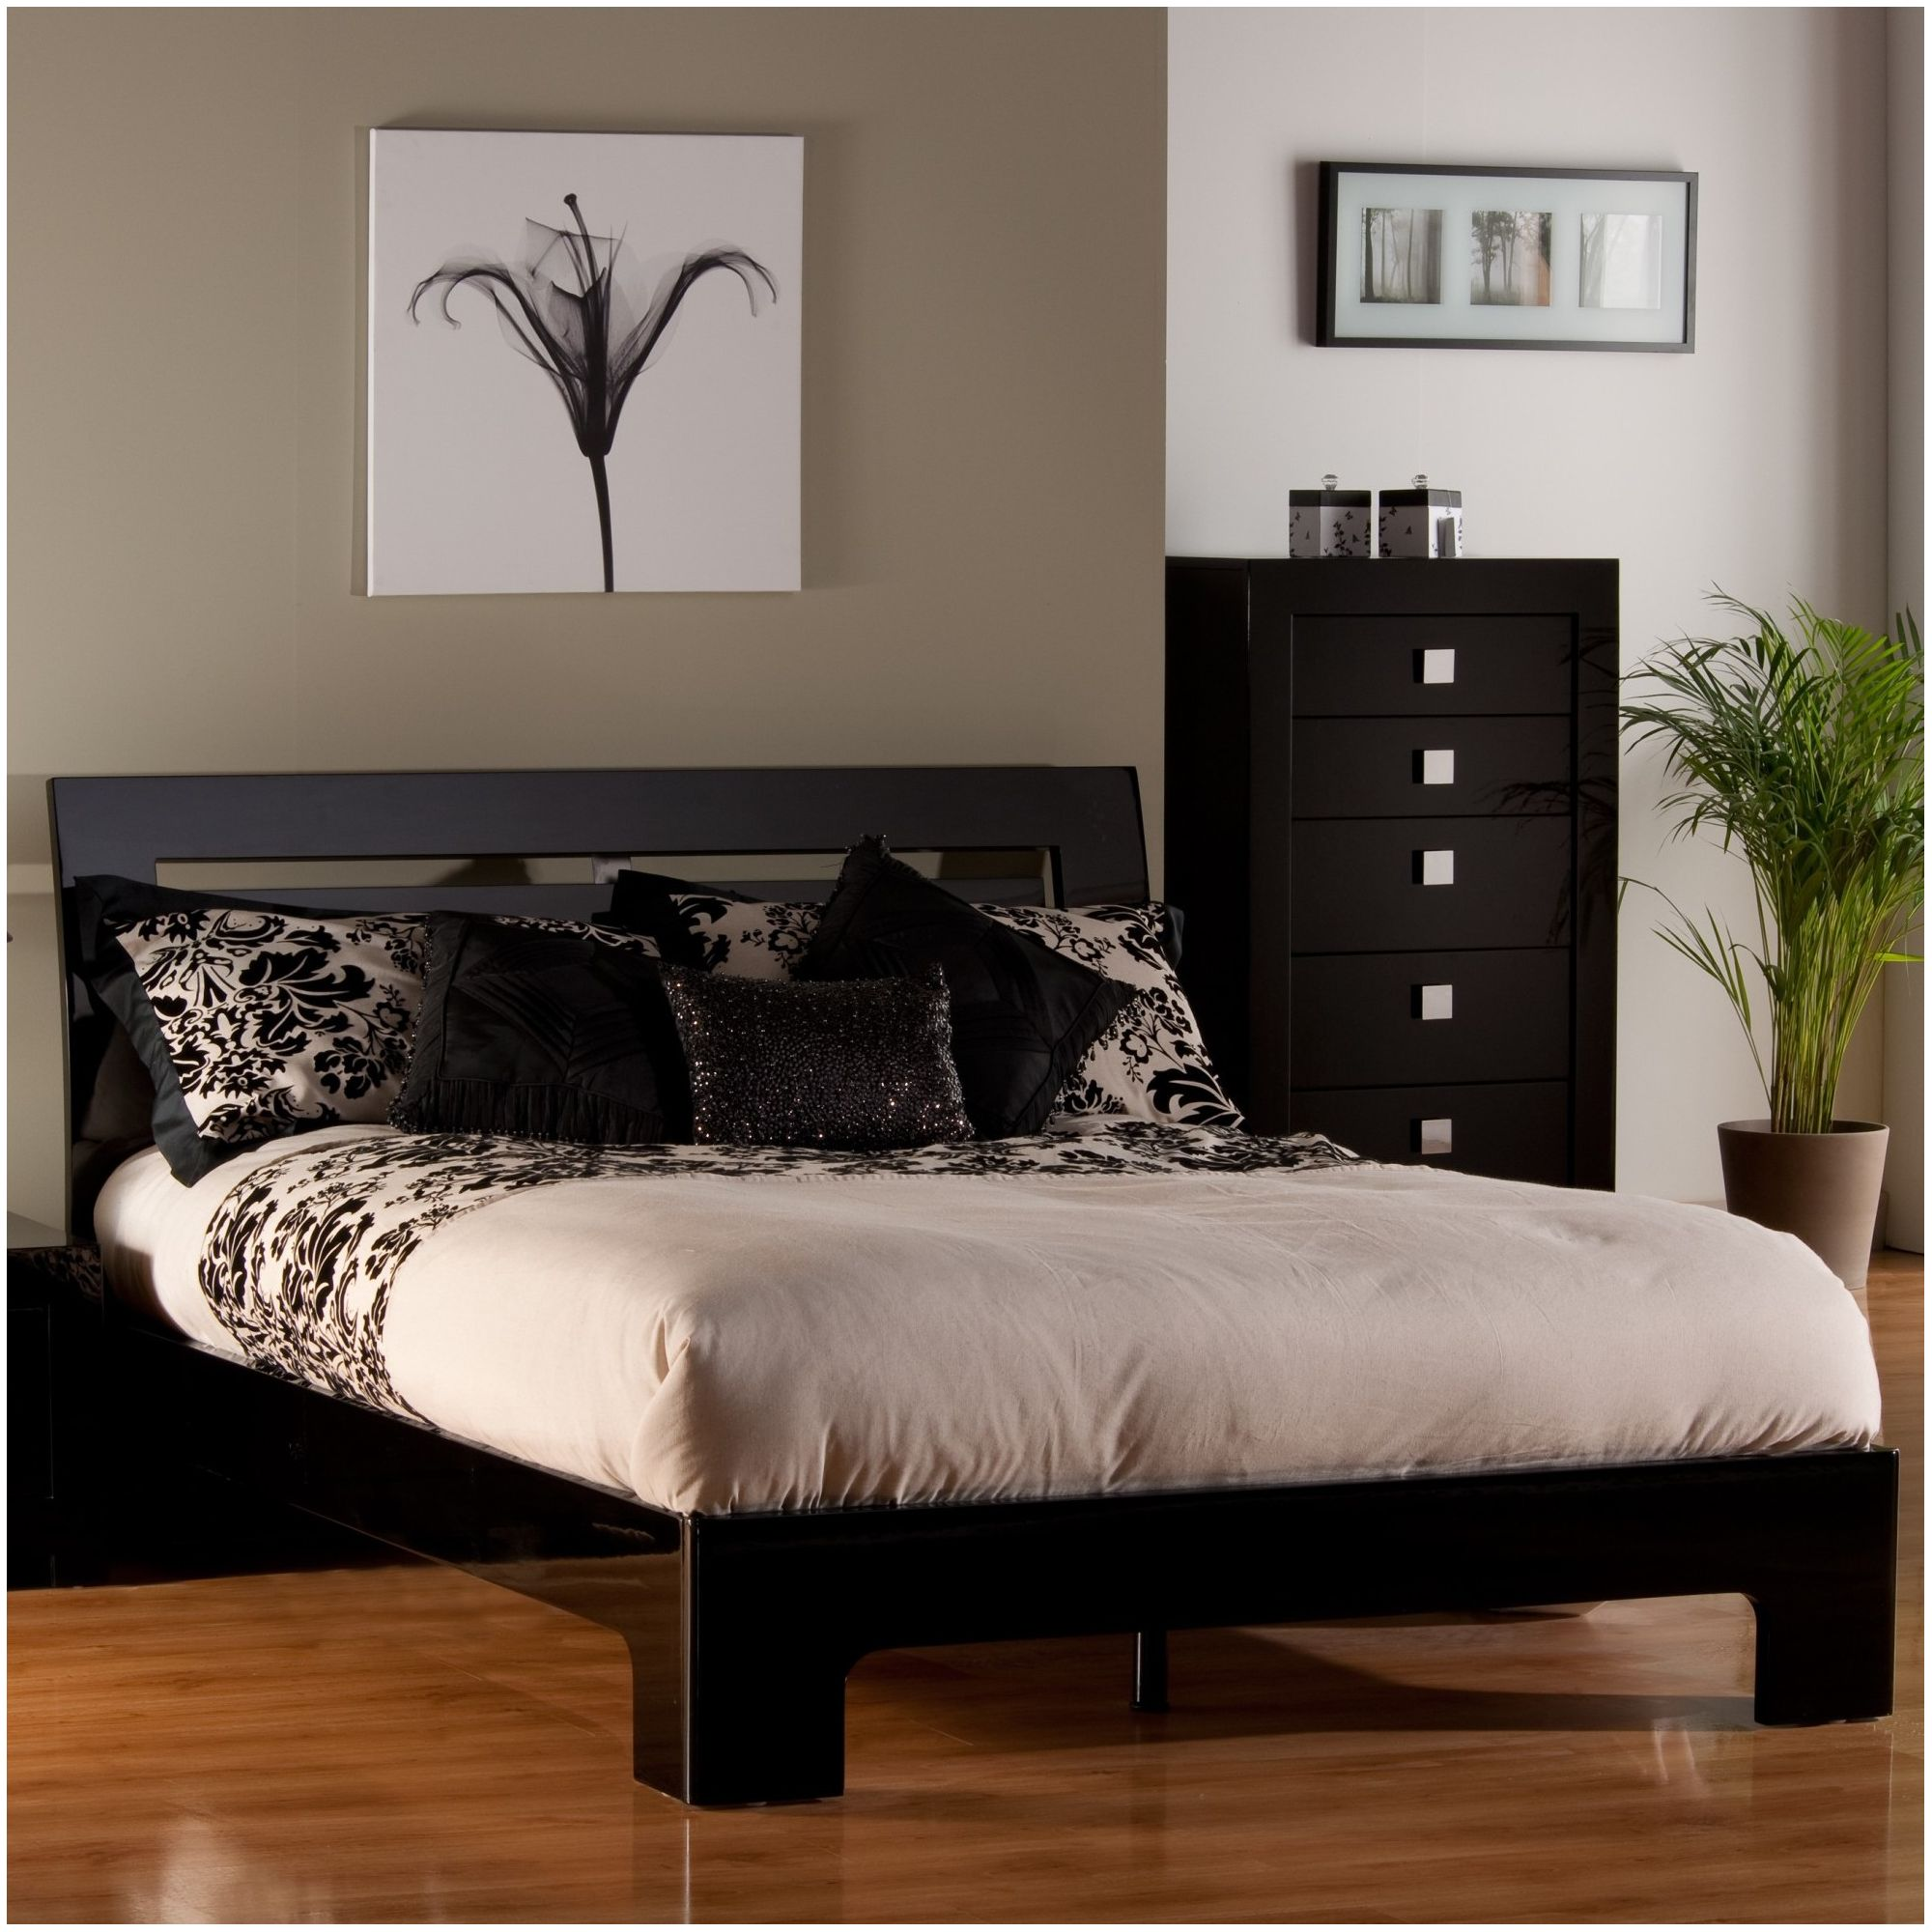 World Furniture Modena Bed Frame - Kingsize at Tesco Direct